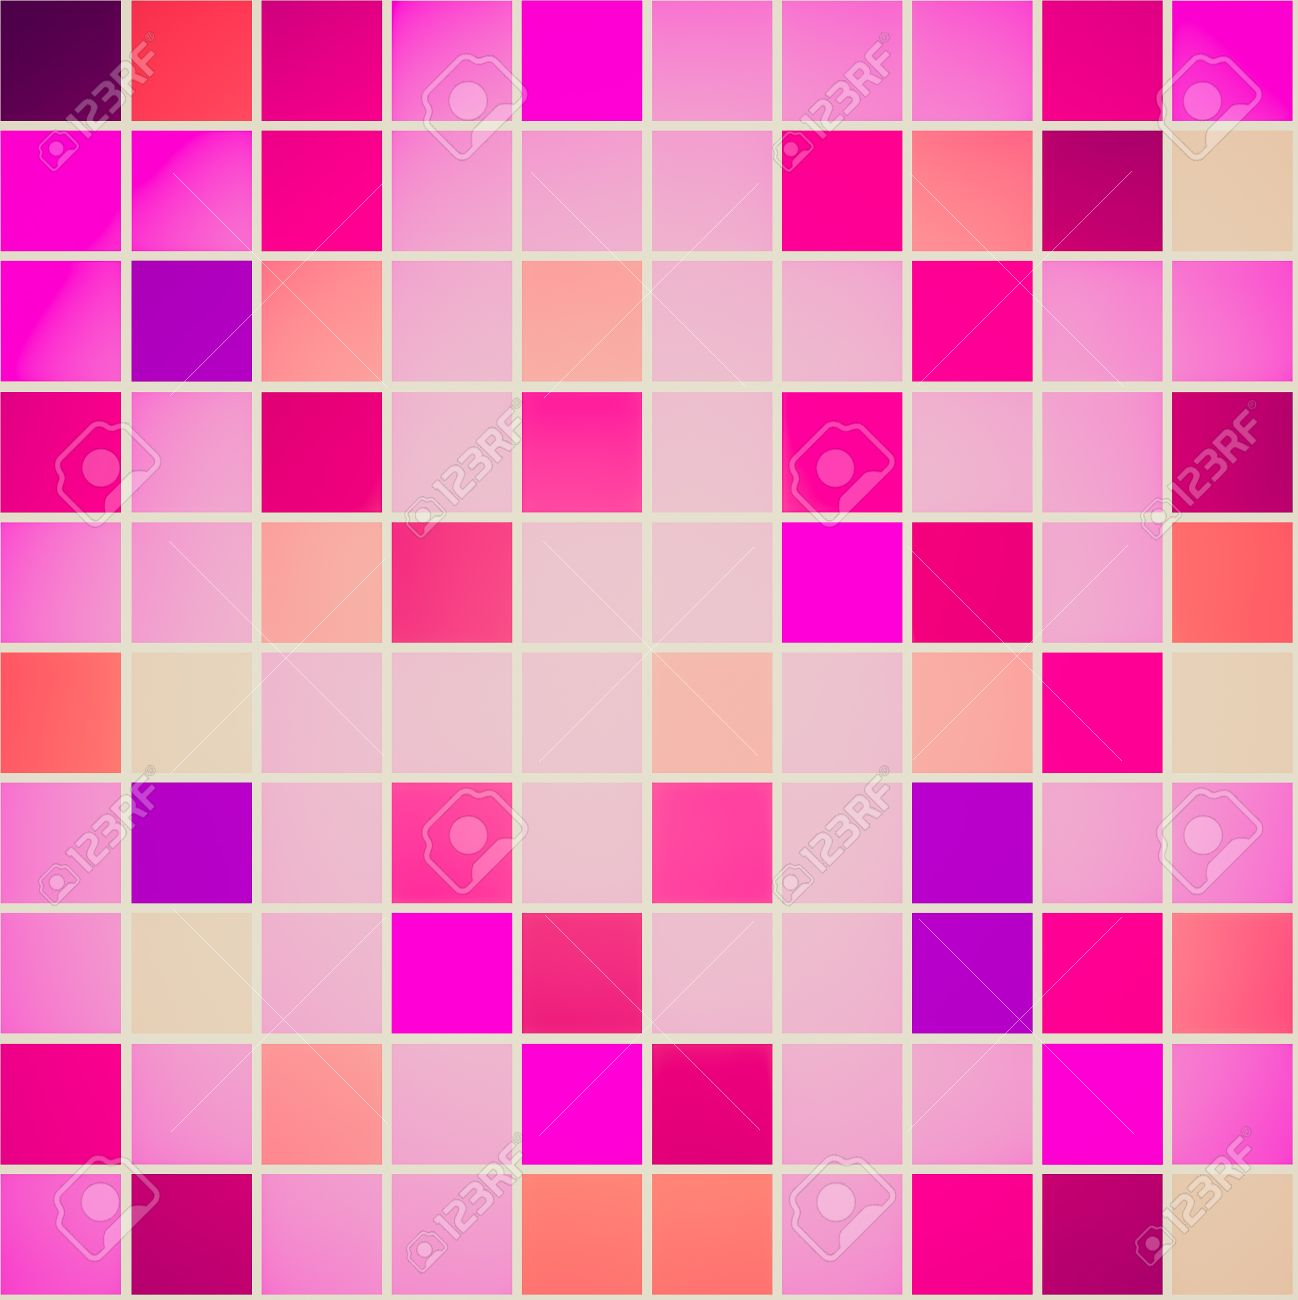 retro looking seamless tiles different shades of pink violet